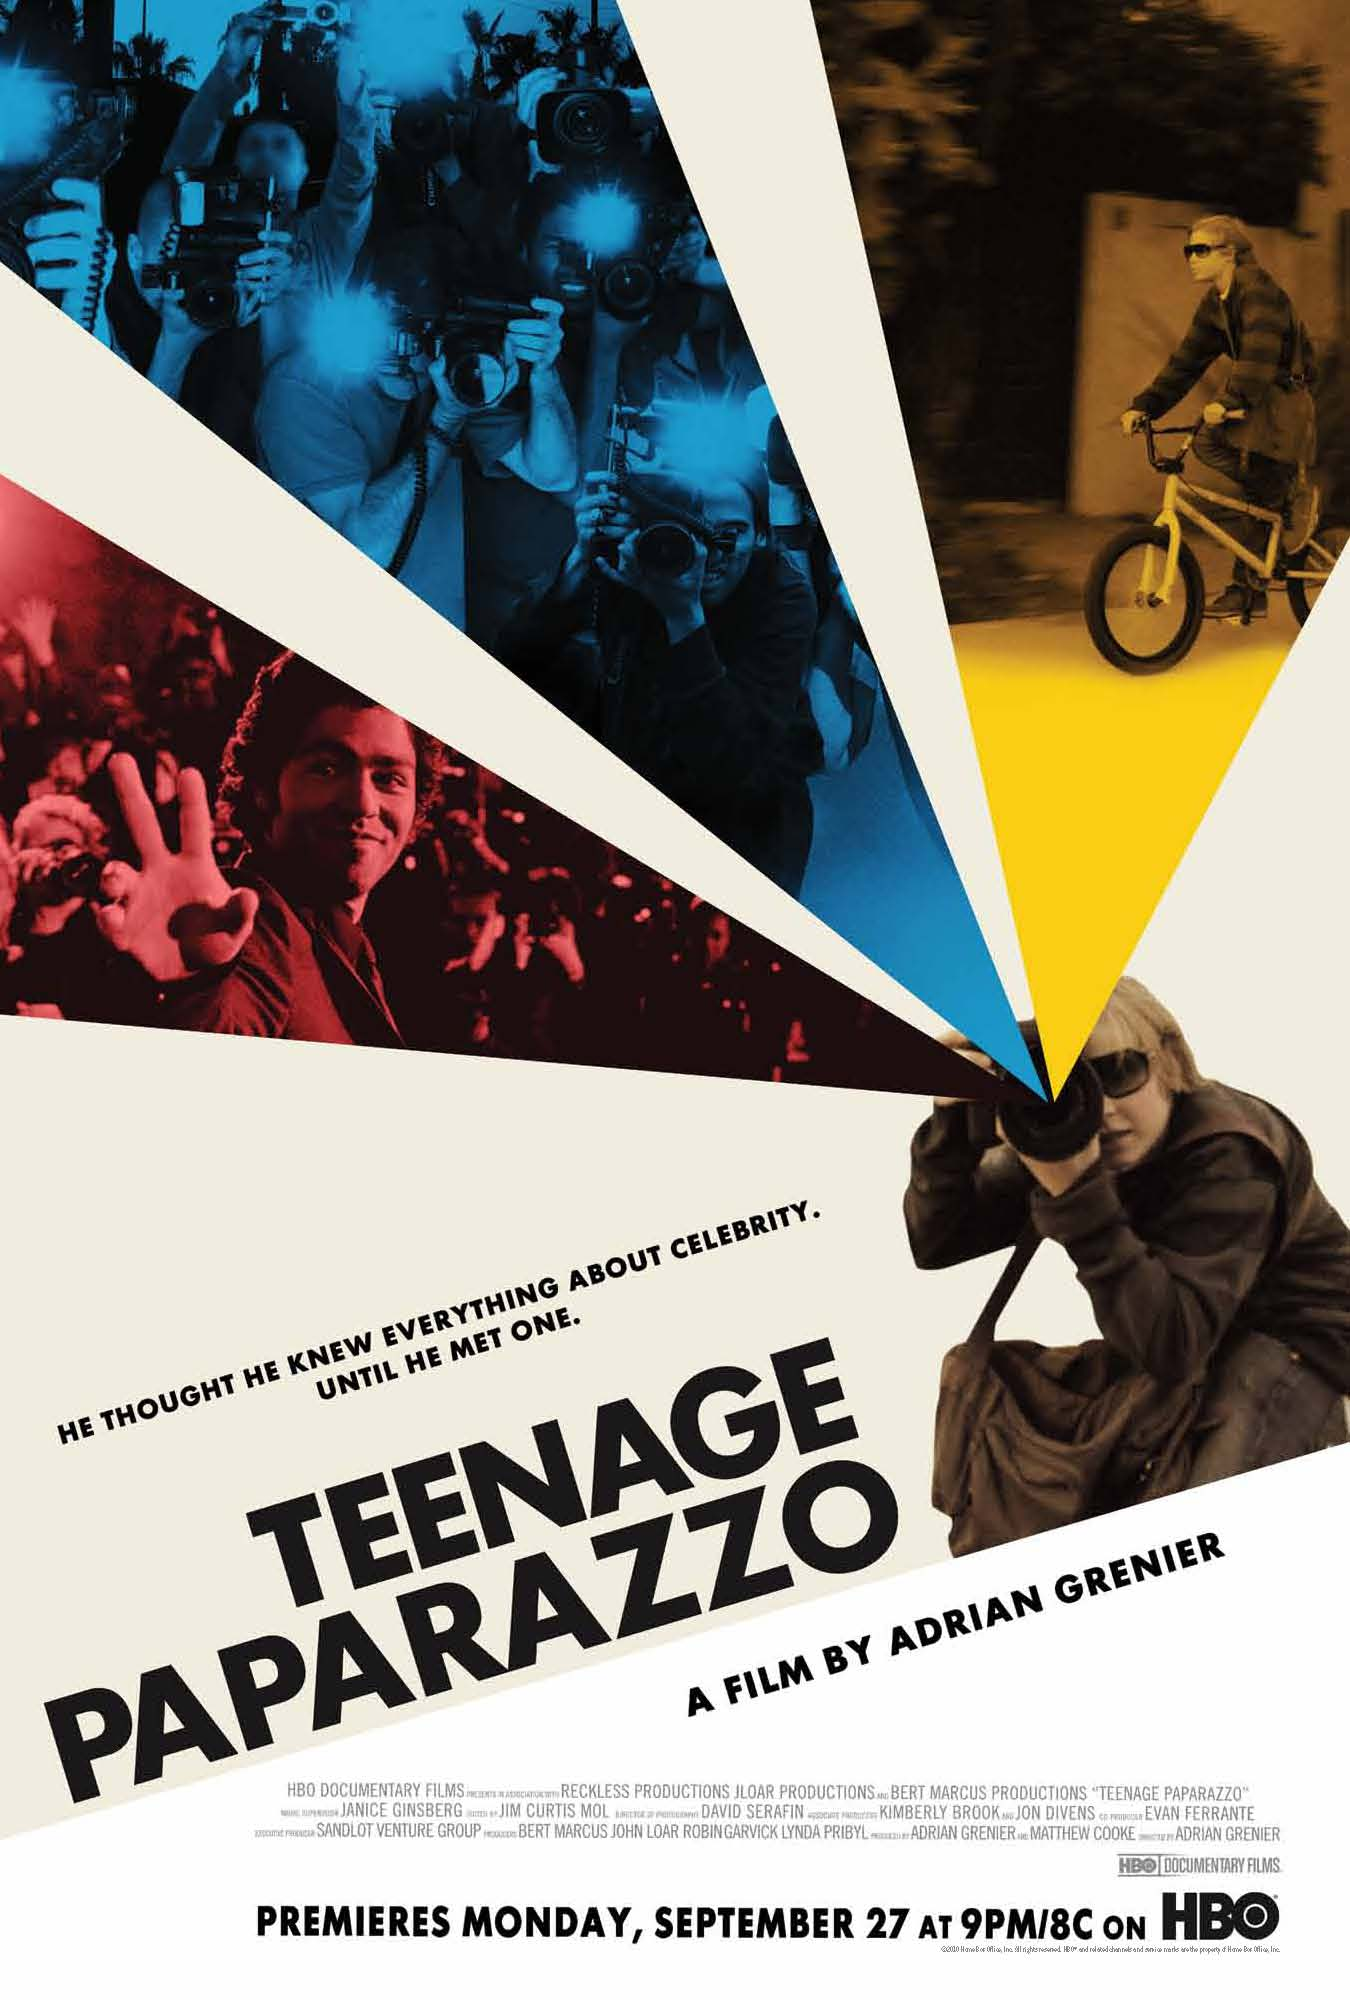 HBO Documentary: Teenage Paparazzo debuts September 27th